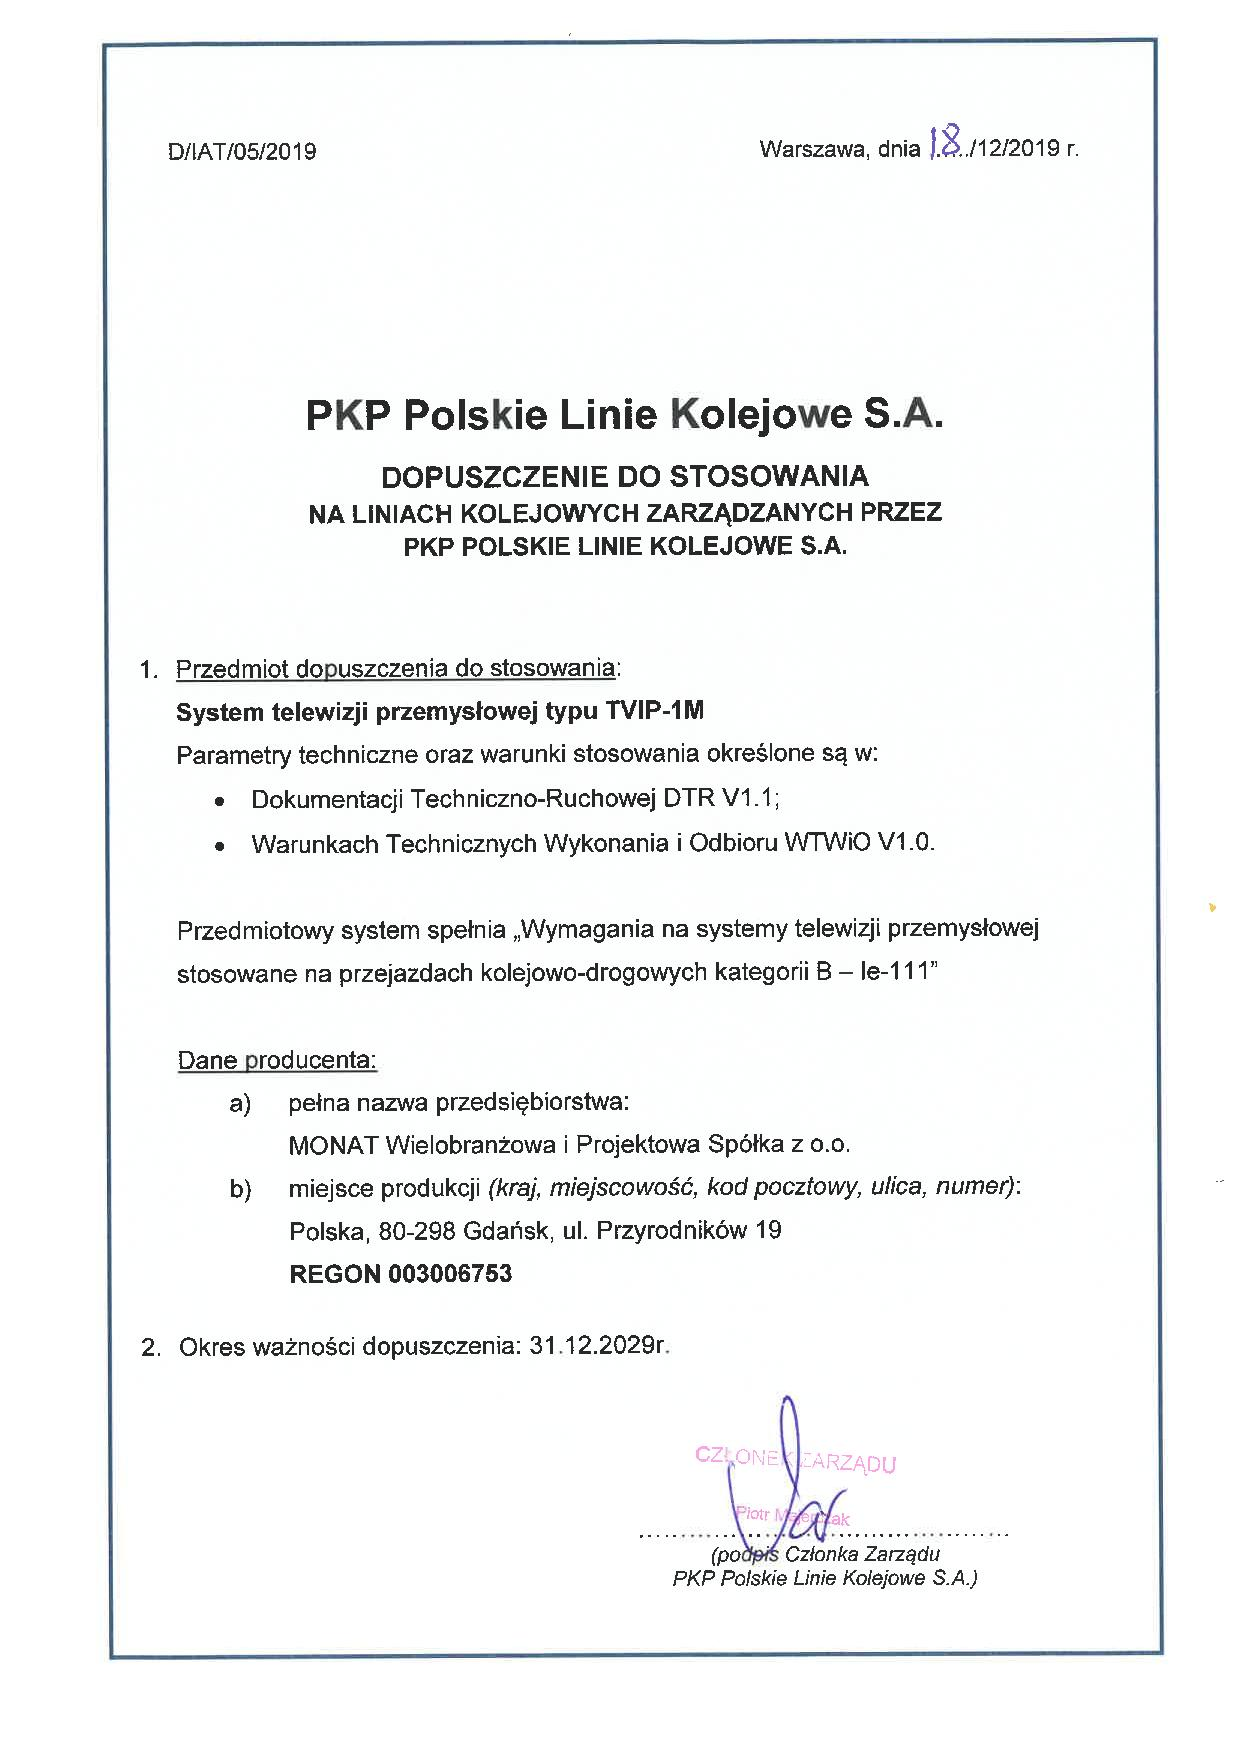 PKP PLK approval for CCTV system (cat. B) produced by MONAT